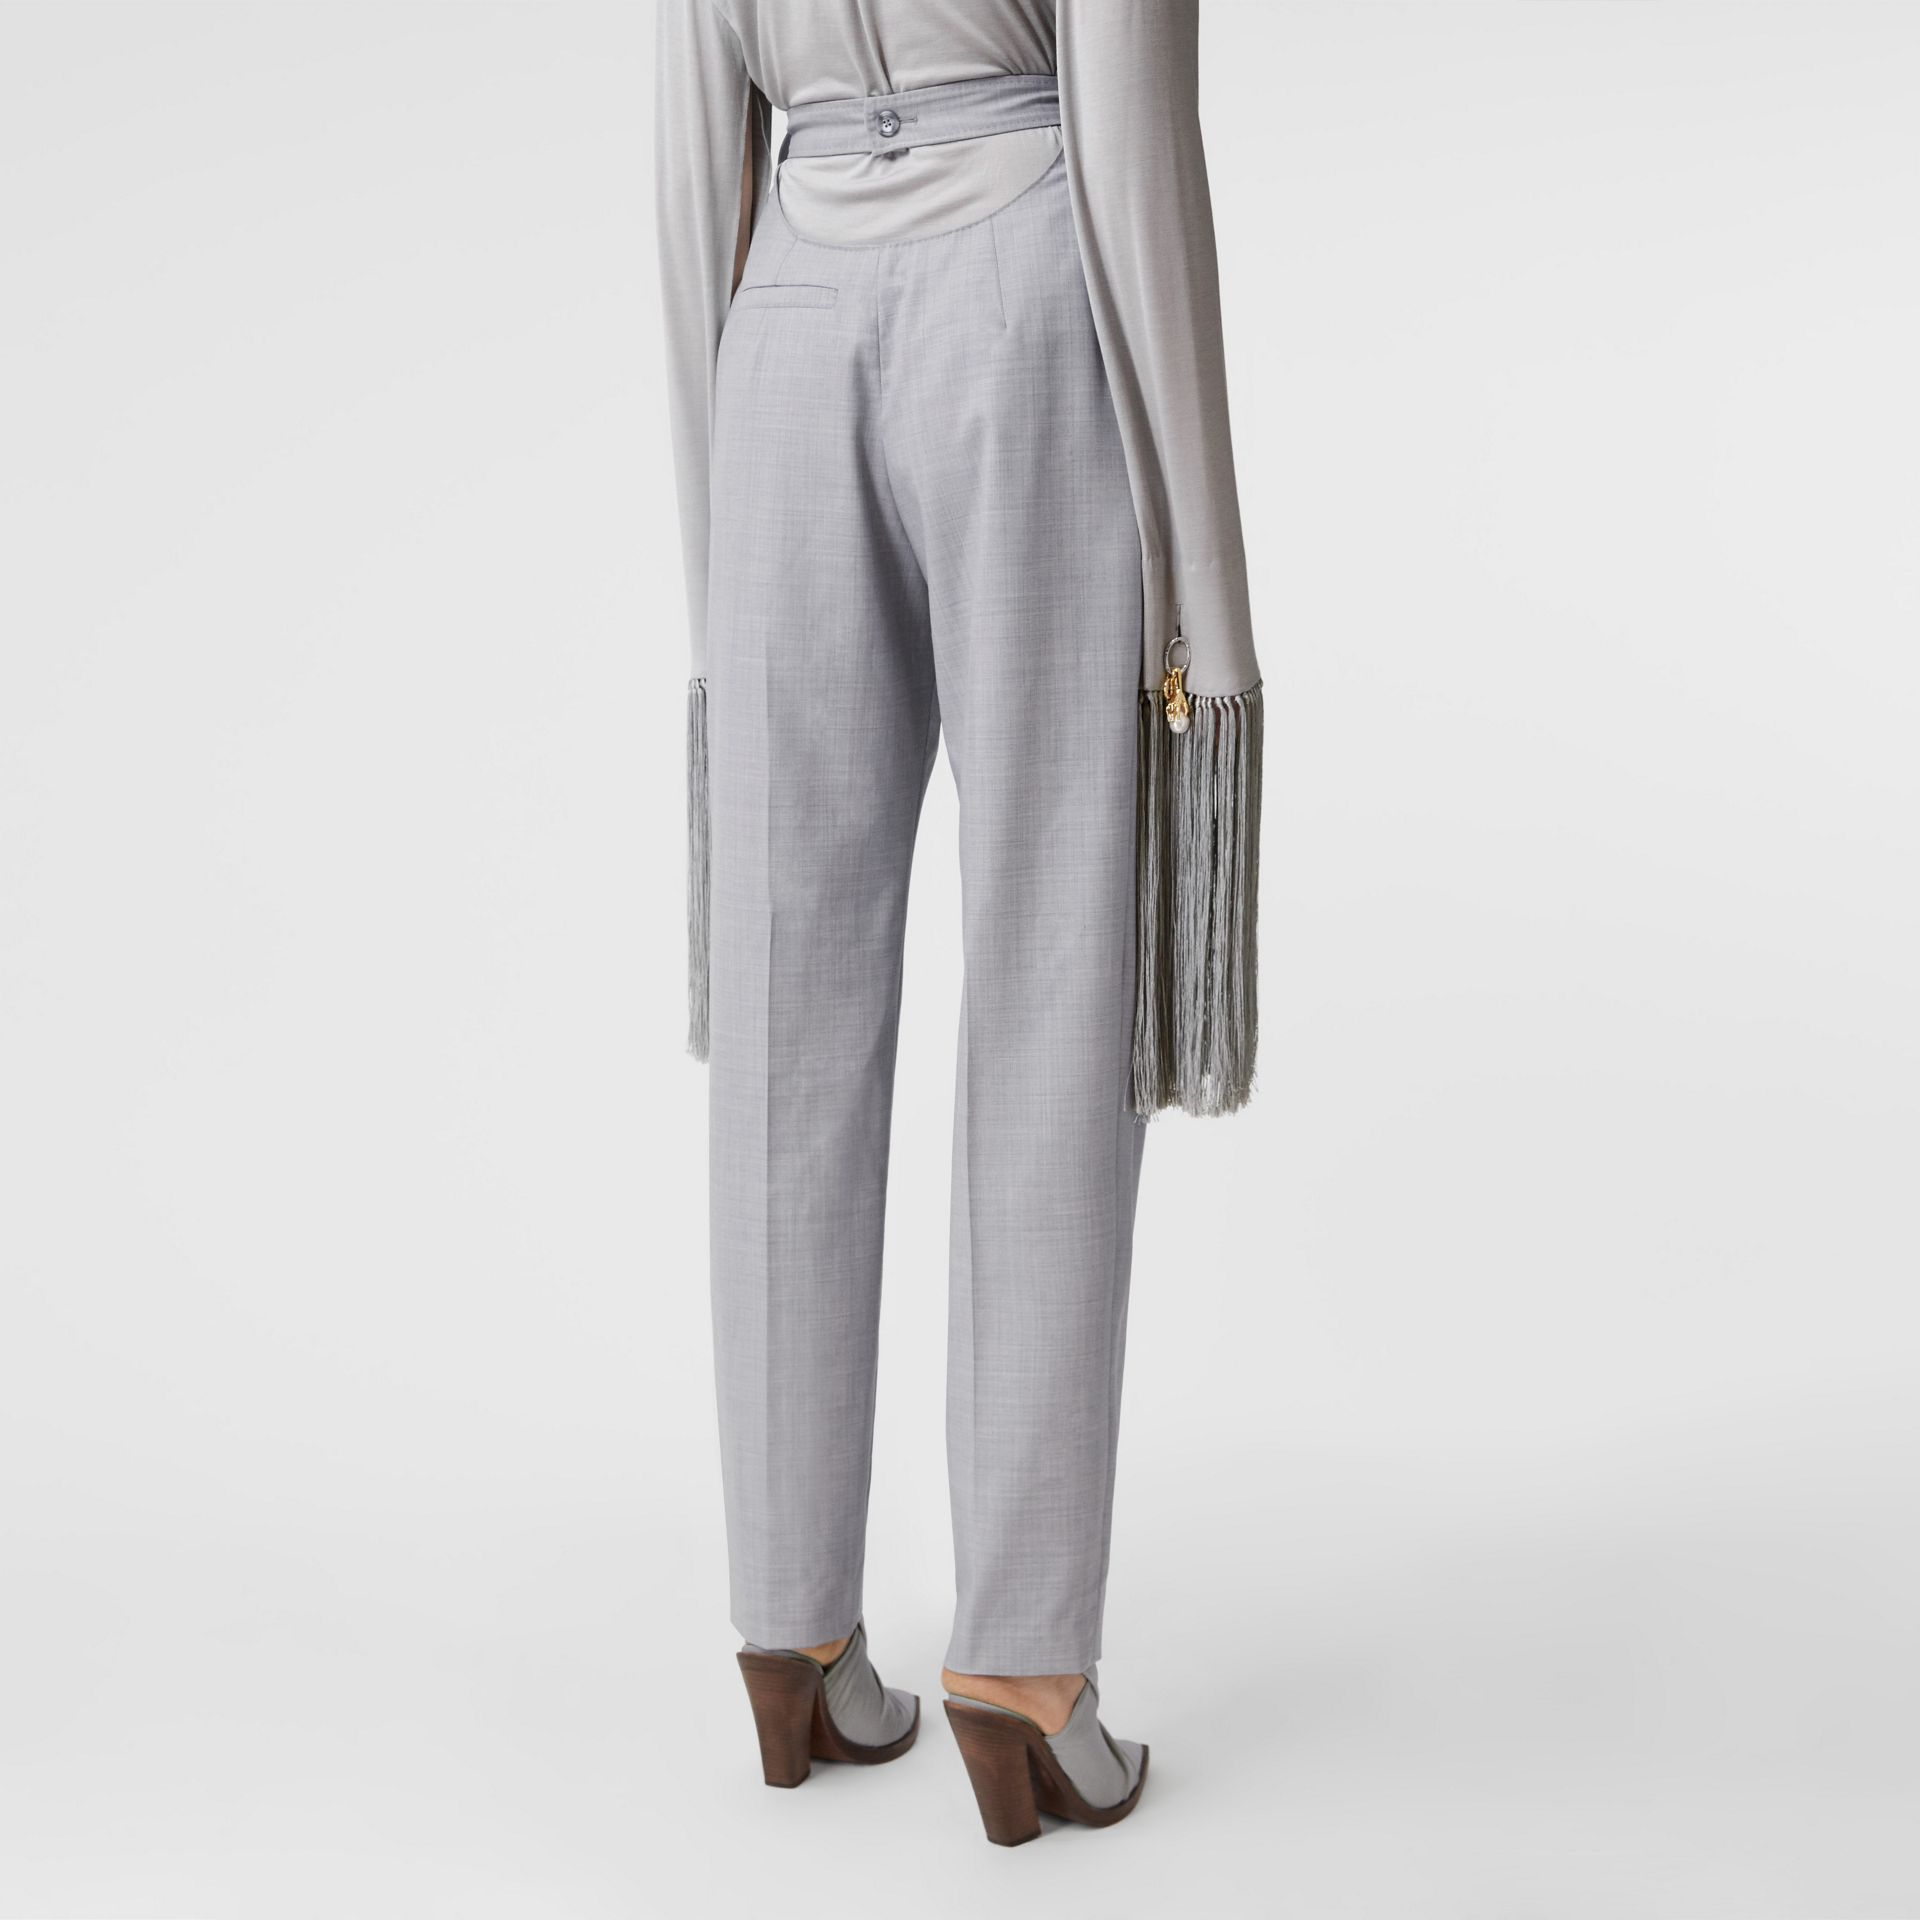 Cut-out Detail Wool Tailored Trousers in Heather Melange - Women | Burberry United States - gallery image 2